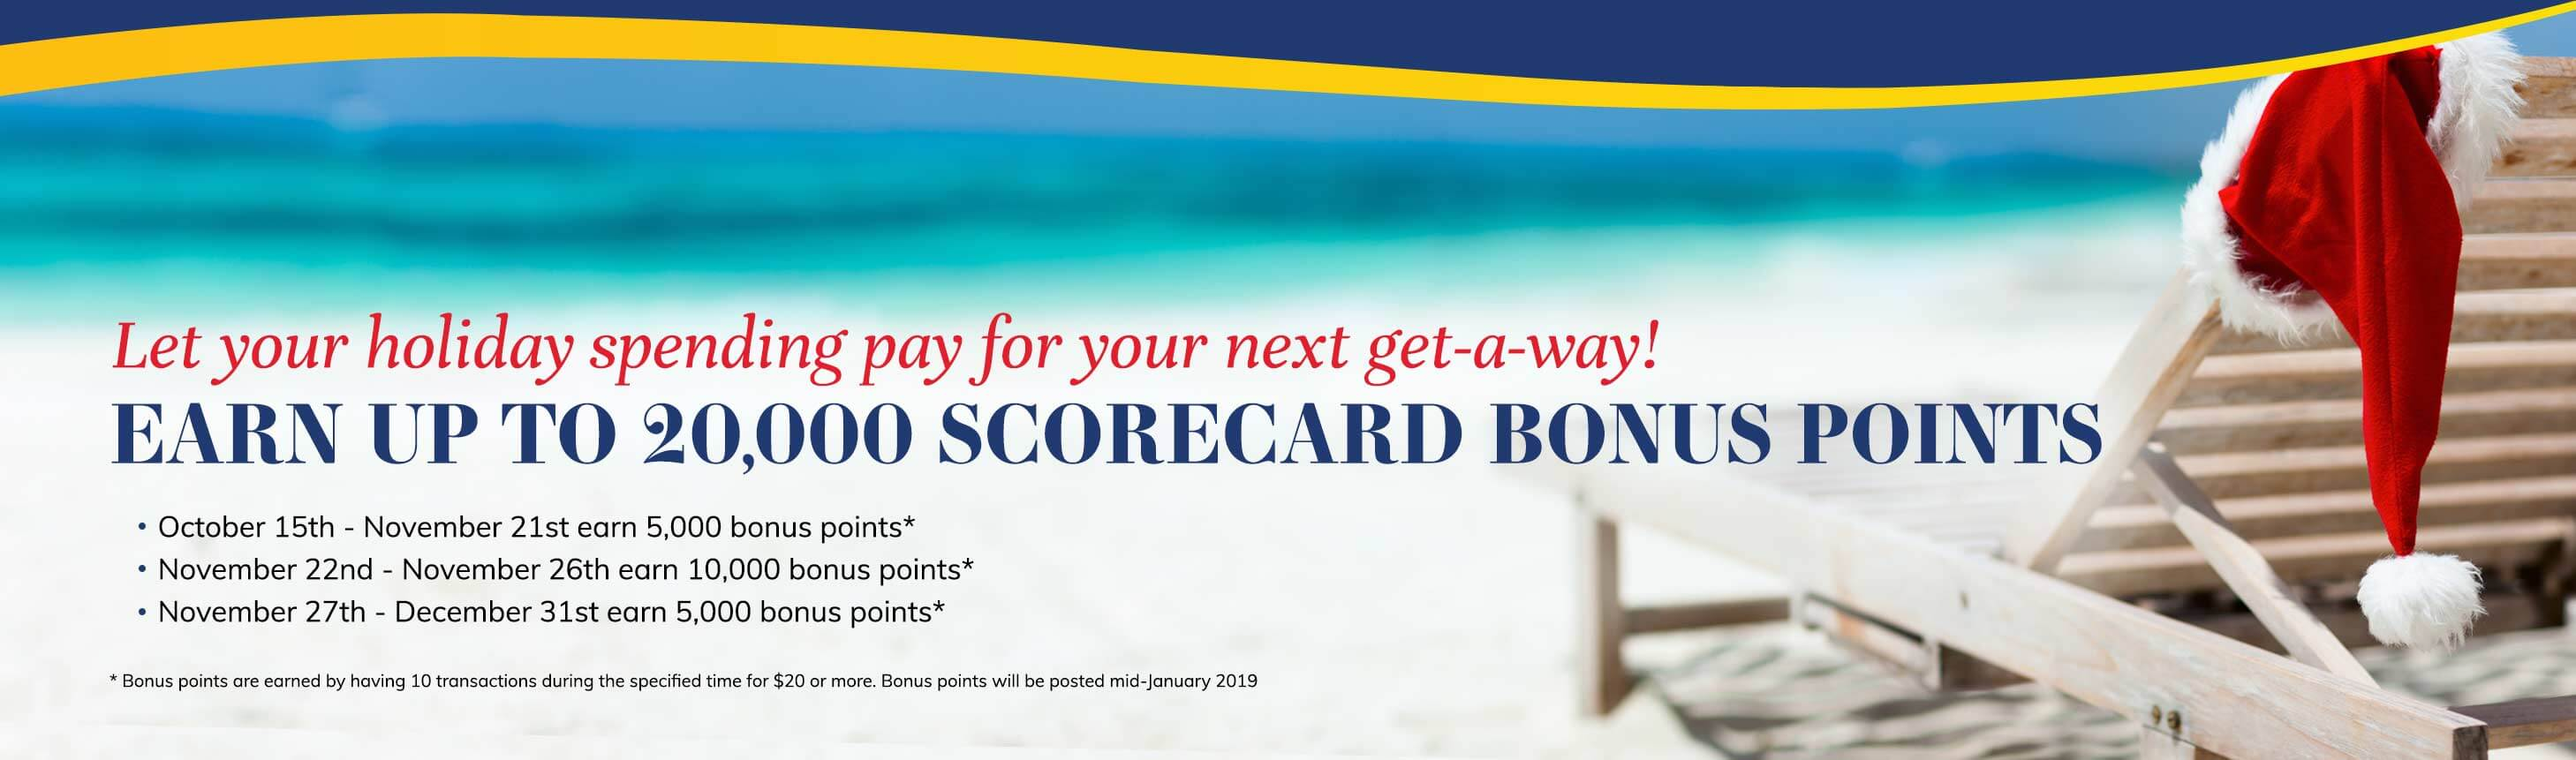 Let your holiday spending pay for your next get-a-way! Earn up to 20,000 Scorecard bonus points. October 15th - November 21st earn 5,000 bonus points*. November 22nd - November 26th earn 10,000 bonus points*. November 27th - December 31st earn 5,000 bonus points*. * Bonus points are earned by having 10 transactions during the specified time for $20 or more. Bonus points will be posted mid-January 2019